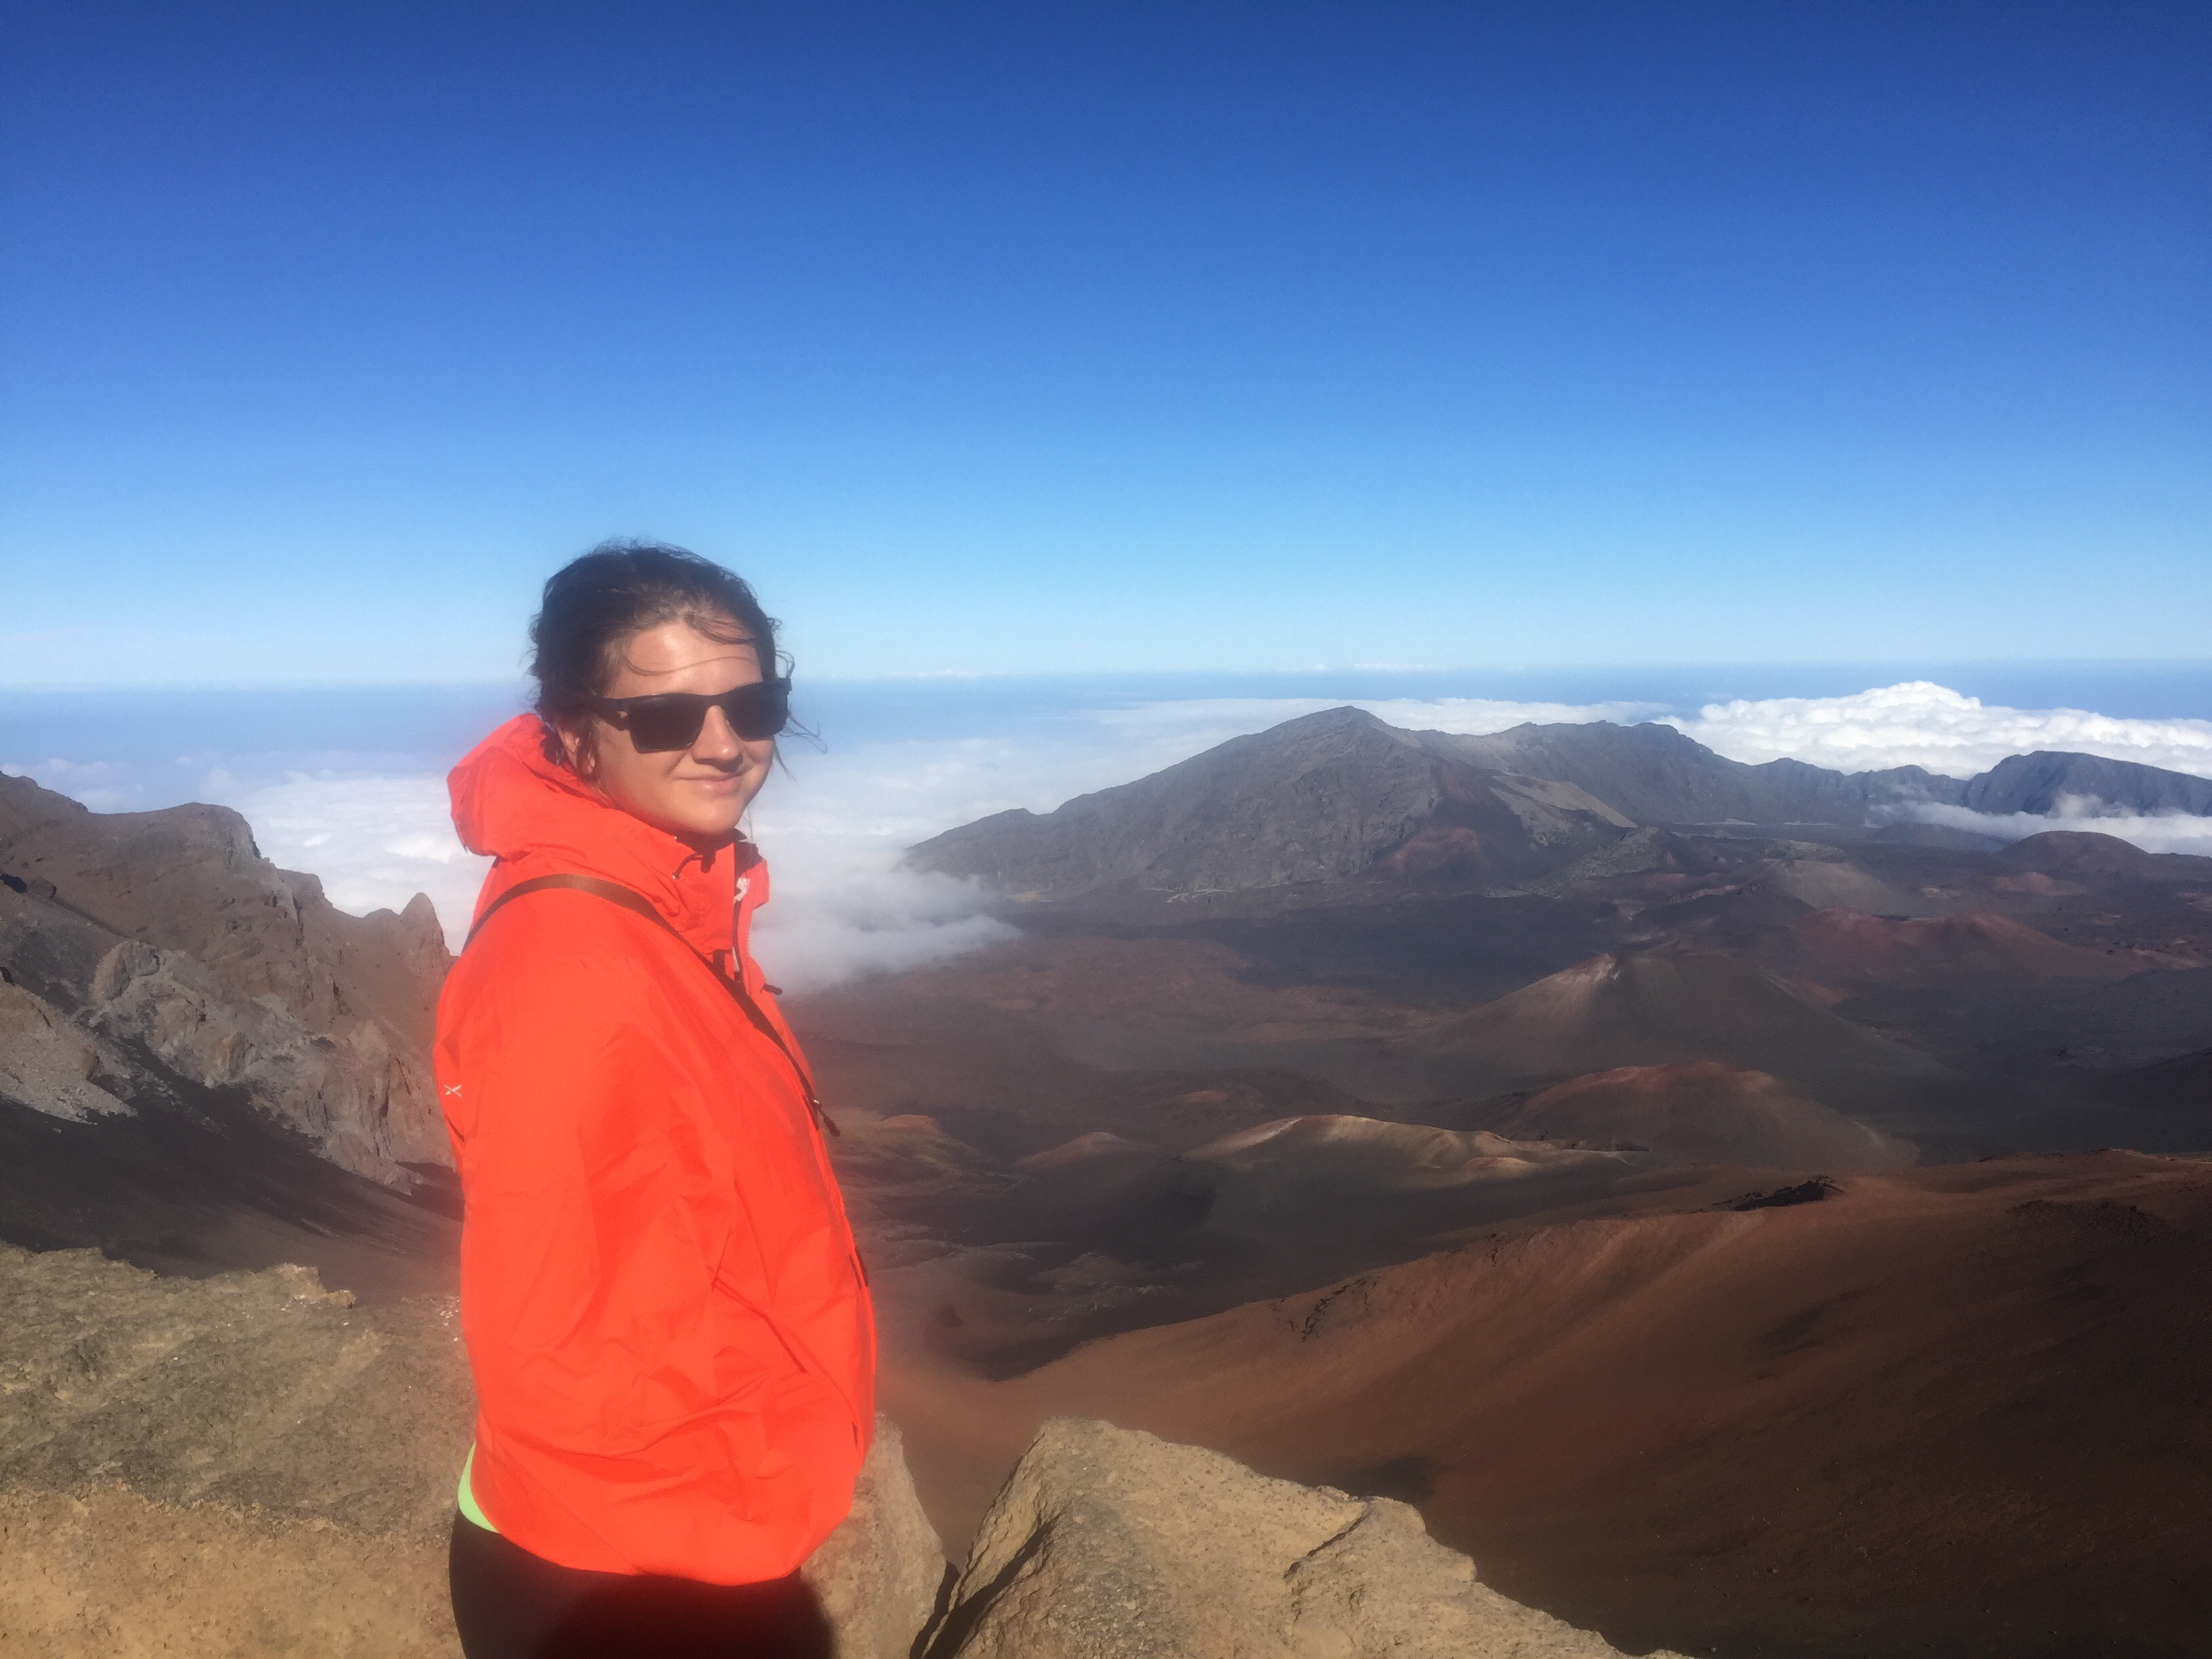 VIDEO: The Volcanic Crater of Haleakala National Park